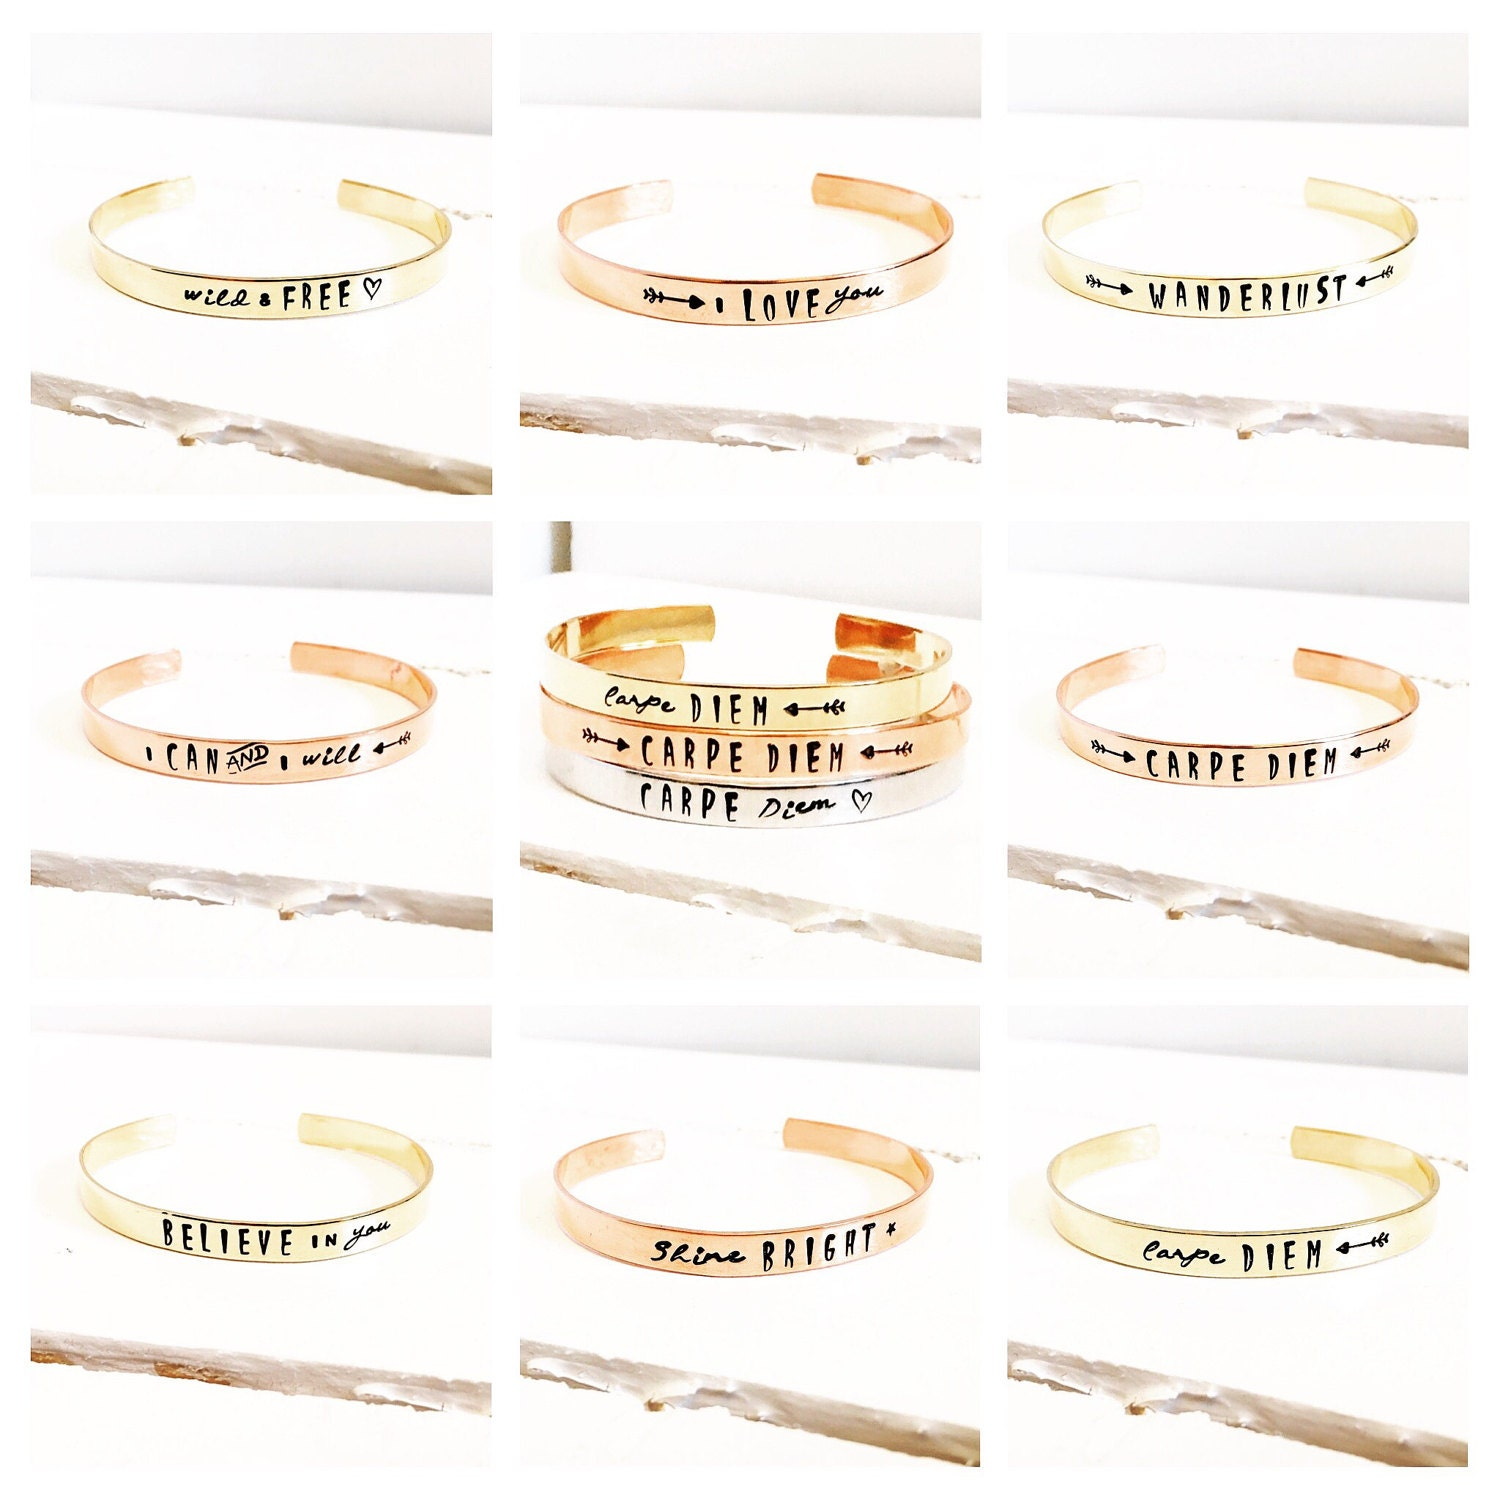 Womens Gift  Gift ideas for Her  Personalized Cuff Bracelet  Quote Bracelet  Carpe Diem  Rose Gold Bracelet  Gold Bracelet (C135)